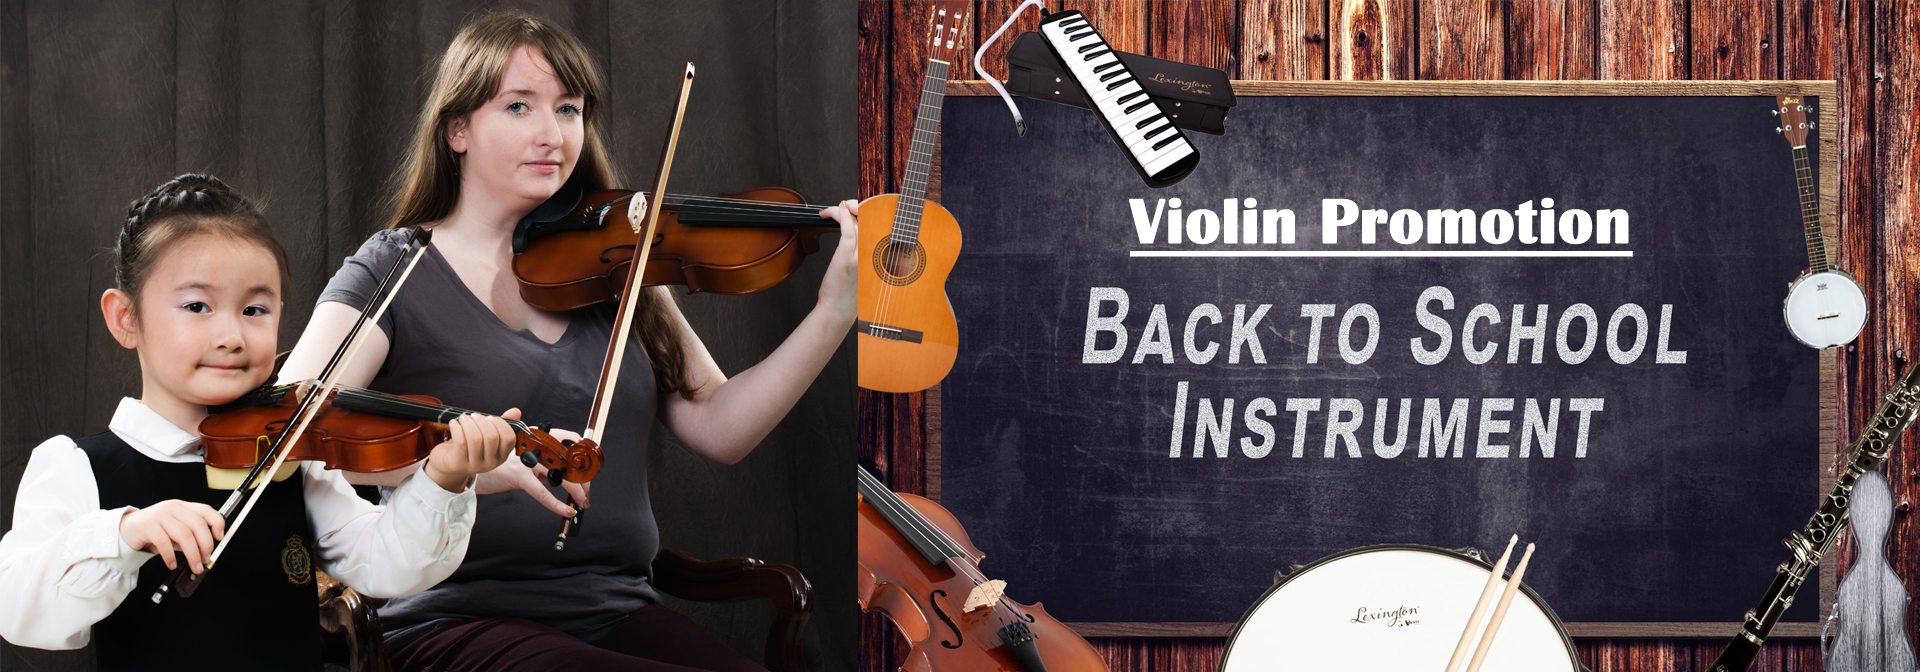 2019Back to school violin promotion